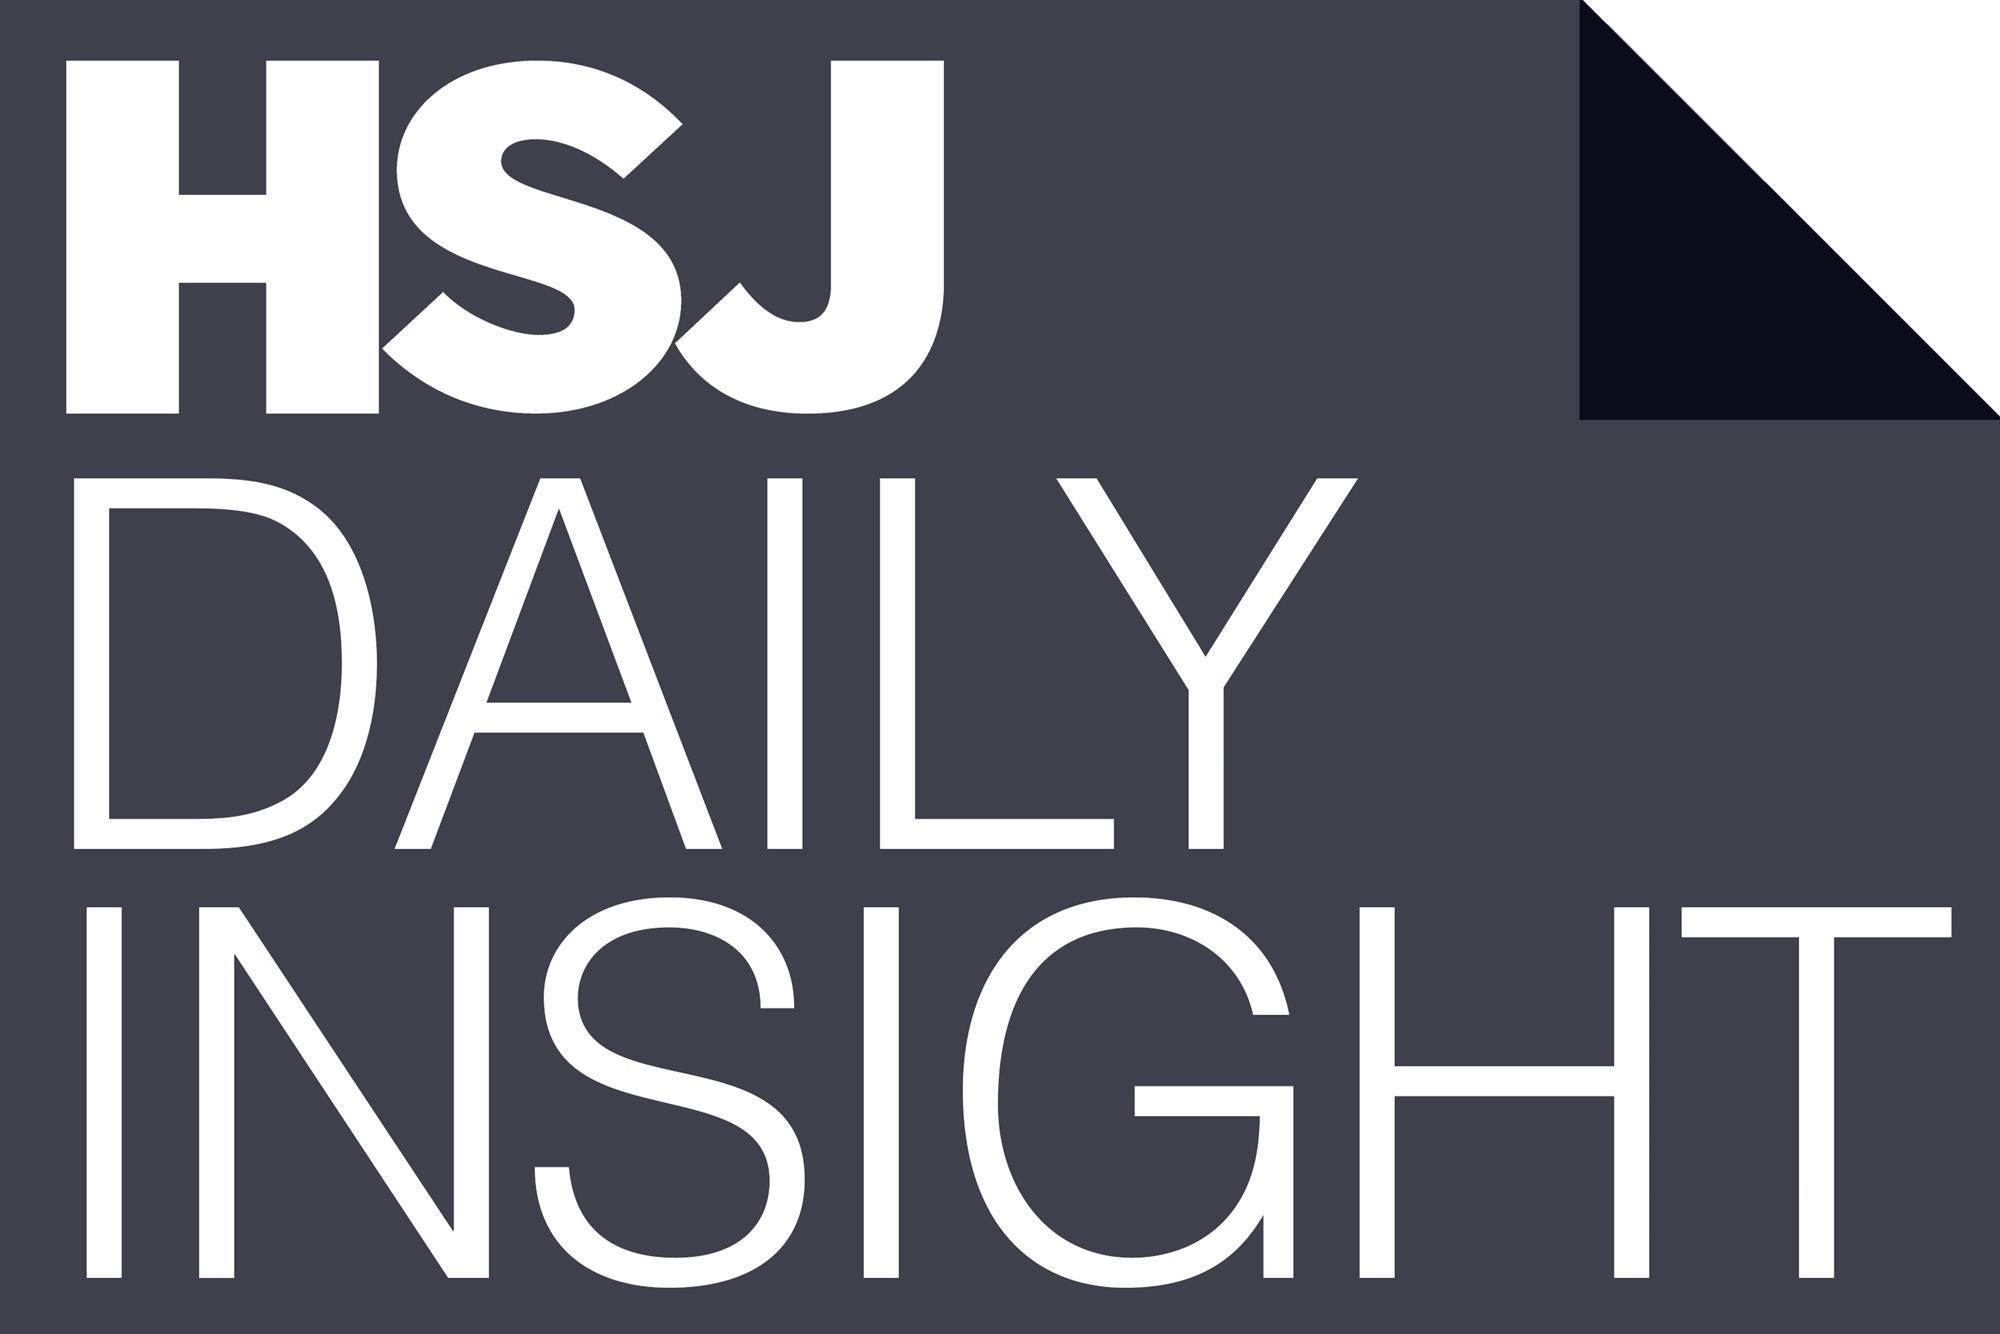 Daily Insight: Right sizing mental health